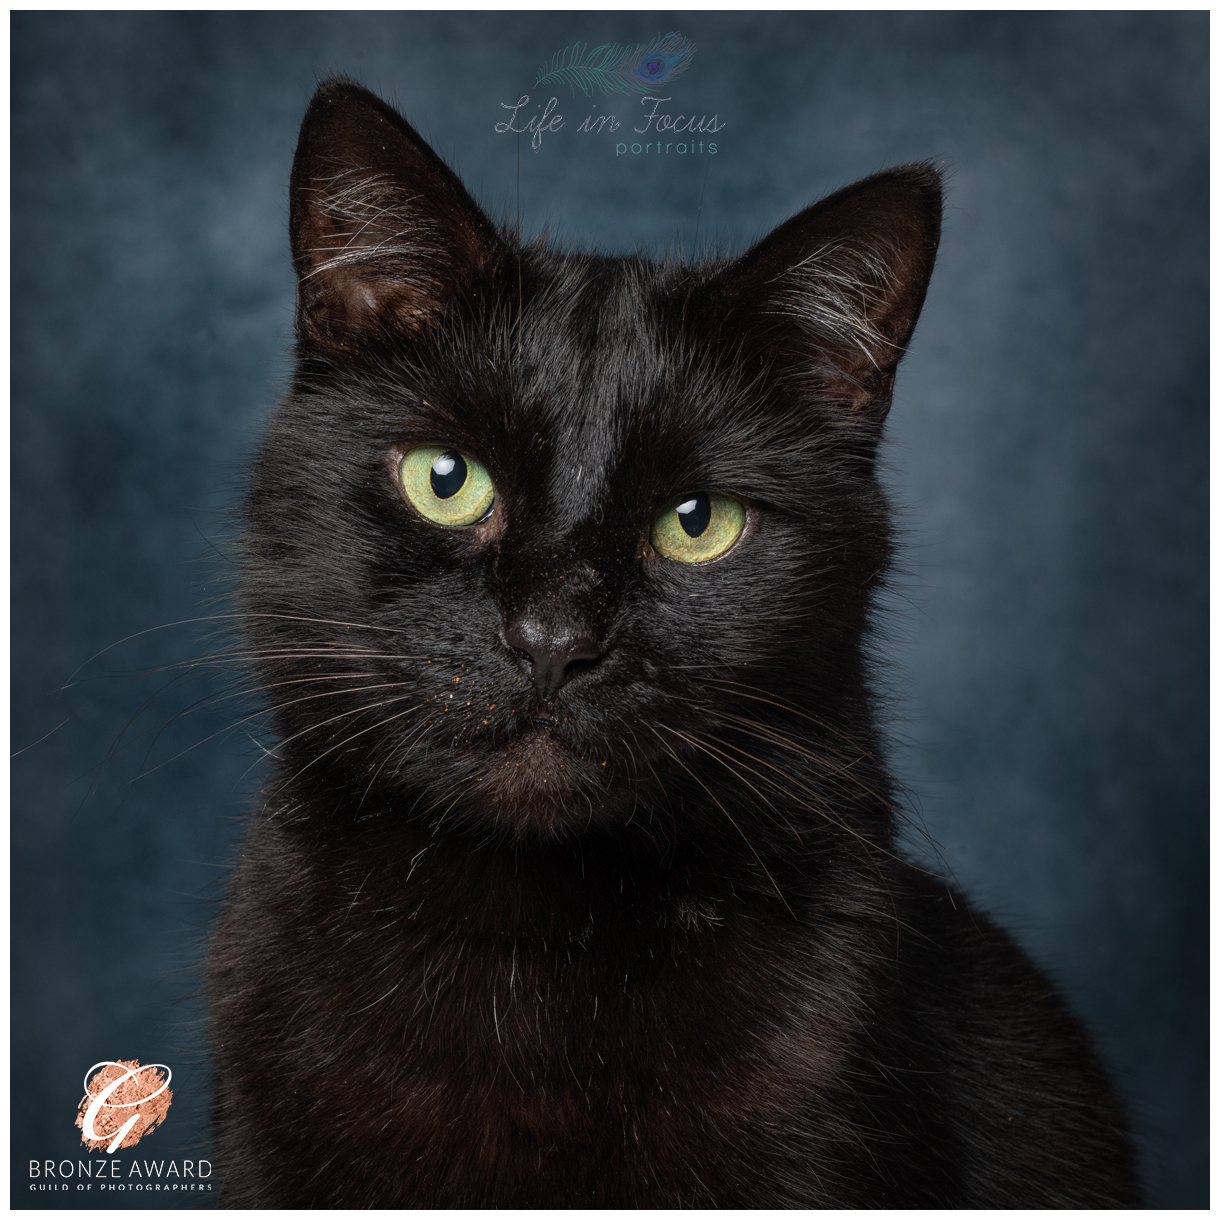 black cat with green eyes Life in Focus Portraits Award Winning pet photography studio Loch Lomond